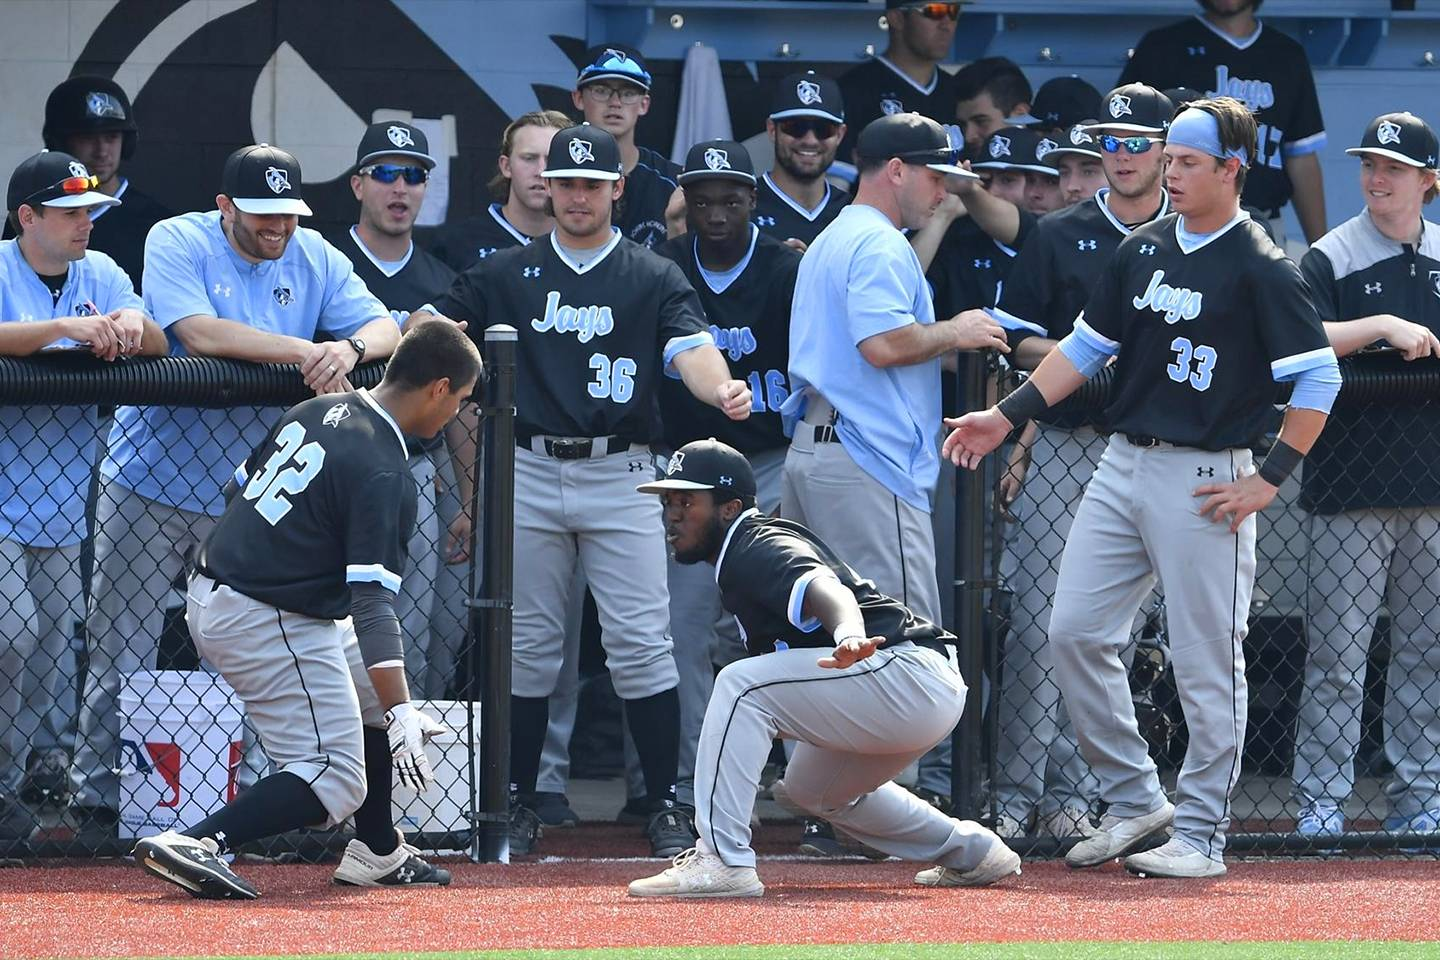 Hopkins baseball players celebrate in the dugout